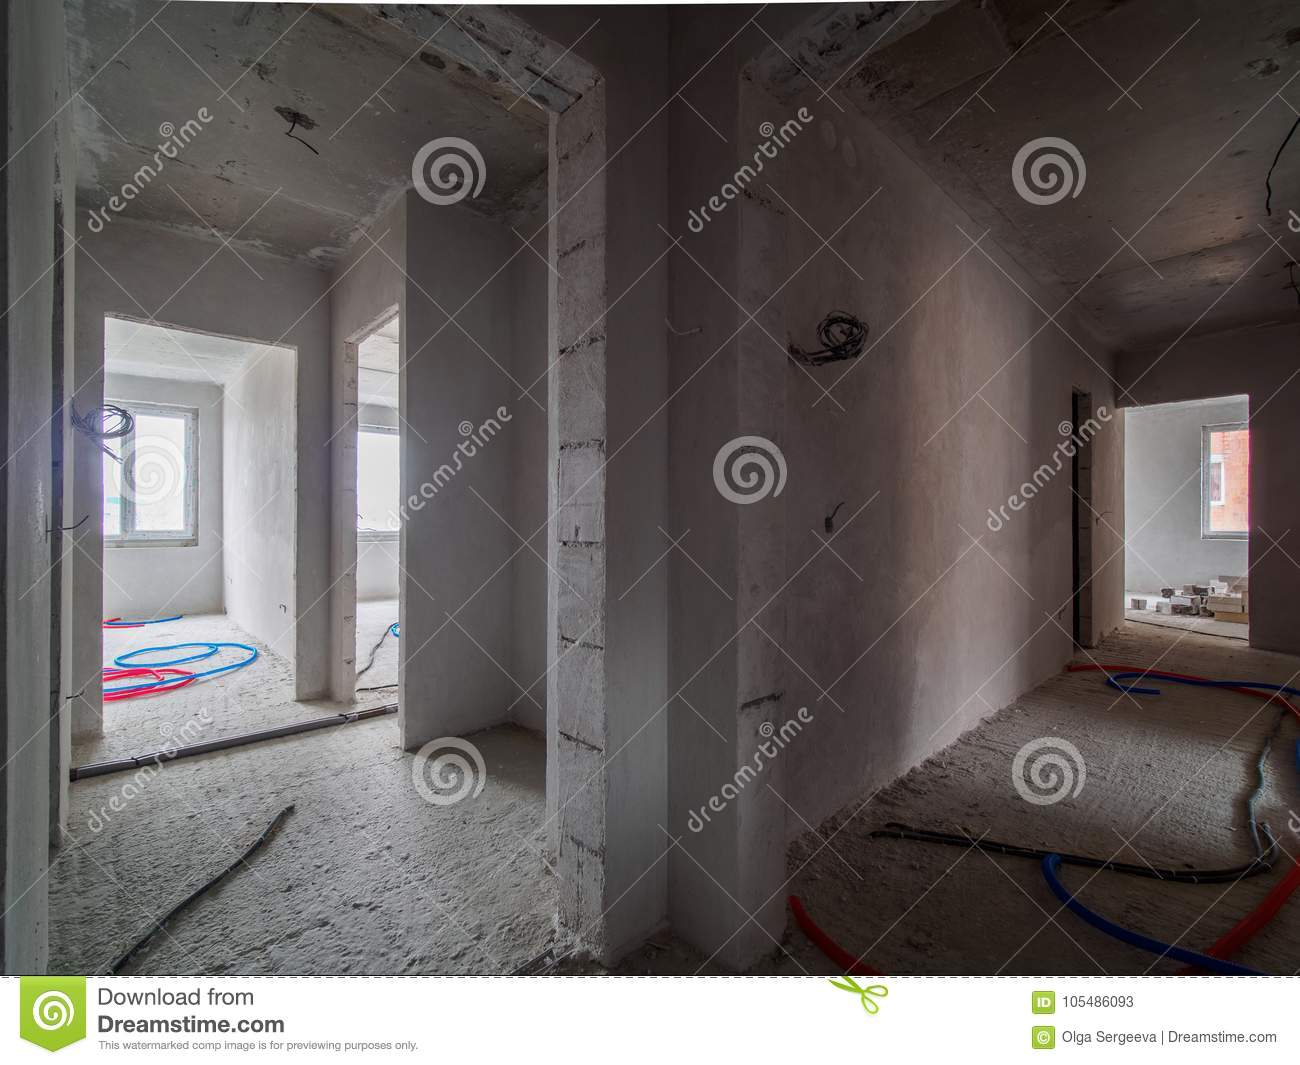 Electrical Wiring On The Floor Stock Image - Image of installation ...